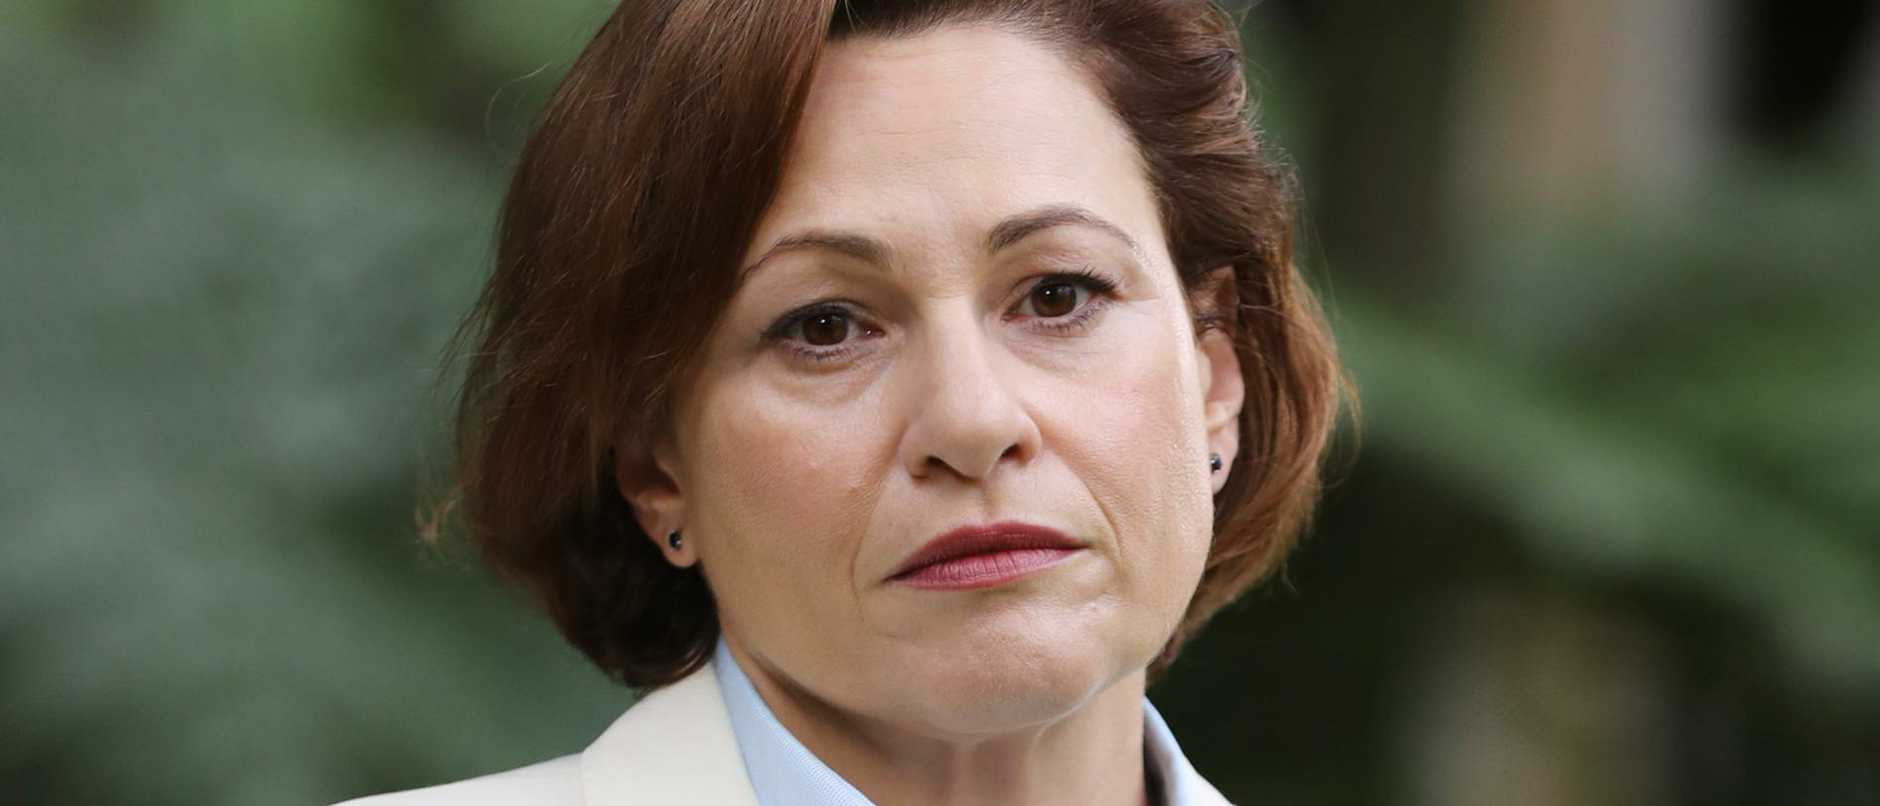 Jackie Trad has moved to clear up what she calls misconceptions around the Cross River Rail house purchase scandal and 'the mess' it caused.